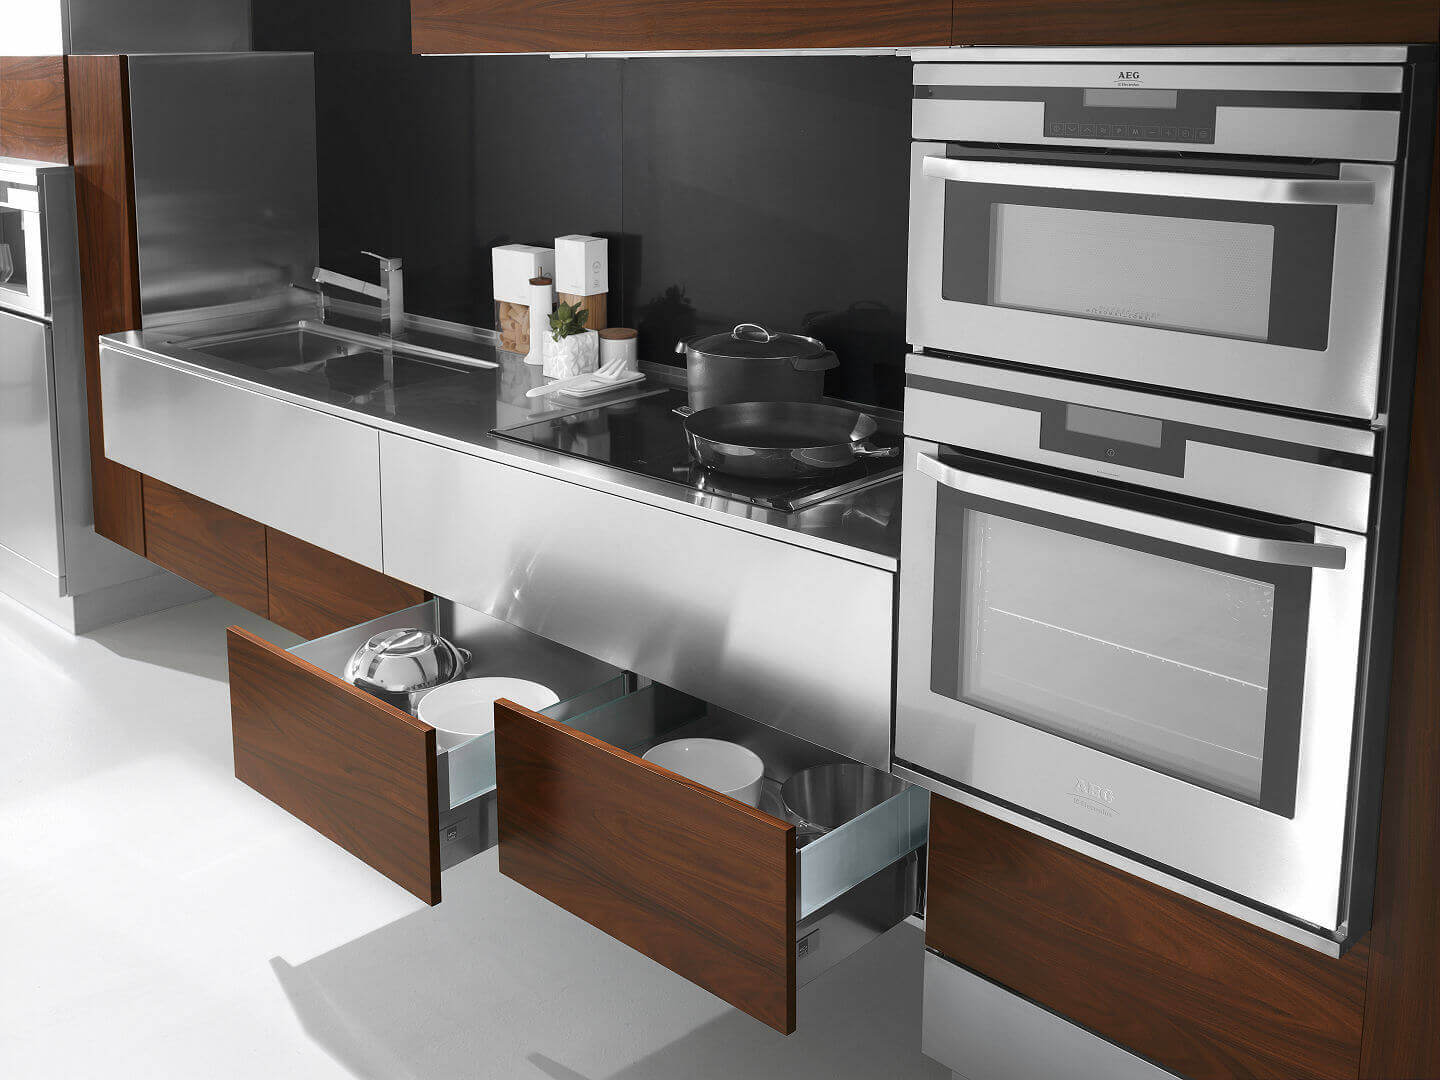 Arca Cucine Italy - Domestic stainless steel kitchens - 24 - Retro - 0003